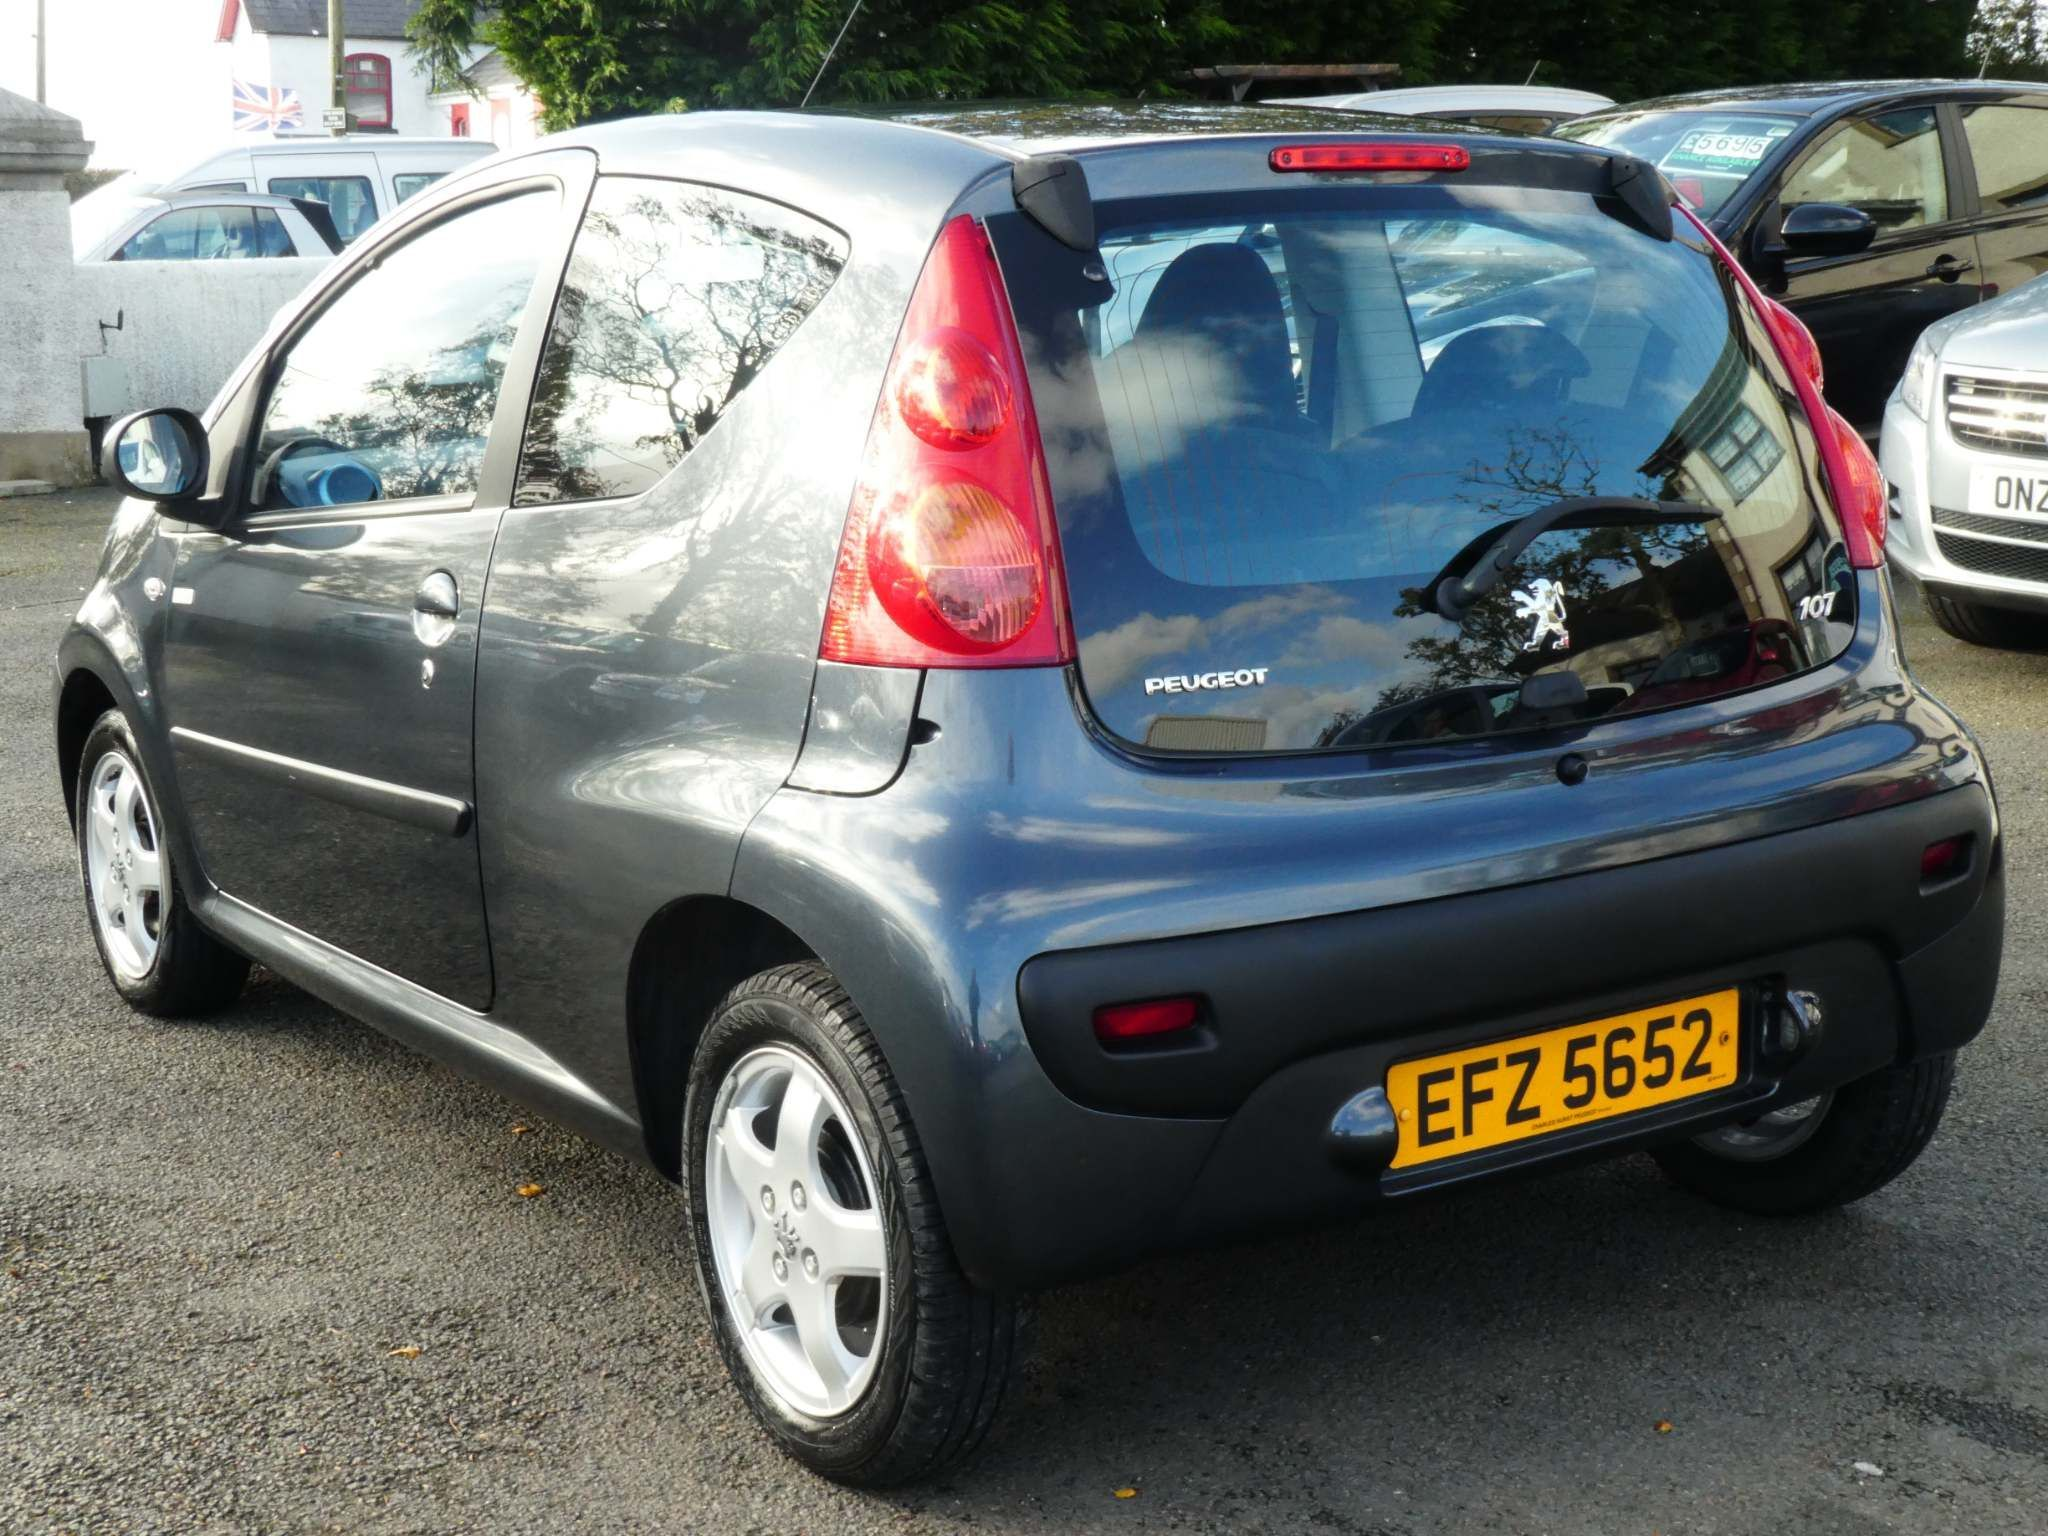 2010 PEUGEOT 107 1.0 12v Millesim Petrol Manual ONLY 23000 MILES – FC Motors 52 Carntall Rd, Newtownabbey BT36 5SD full